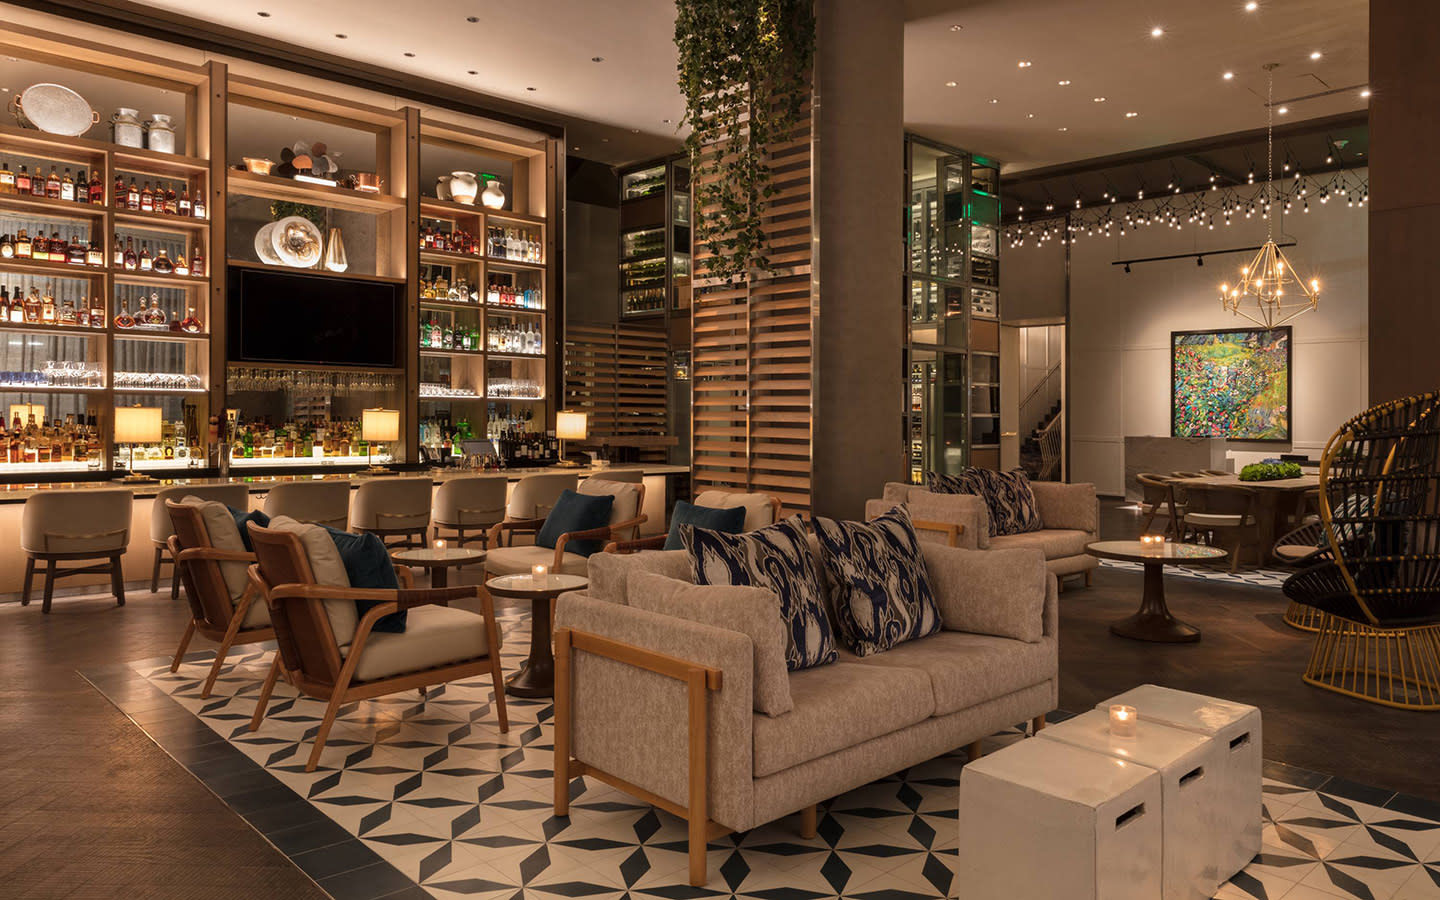 Boulud Sud - Lounge and Bar